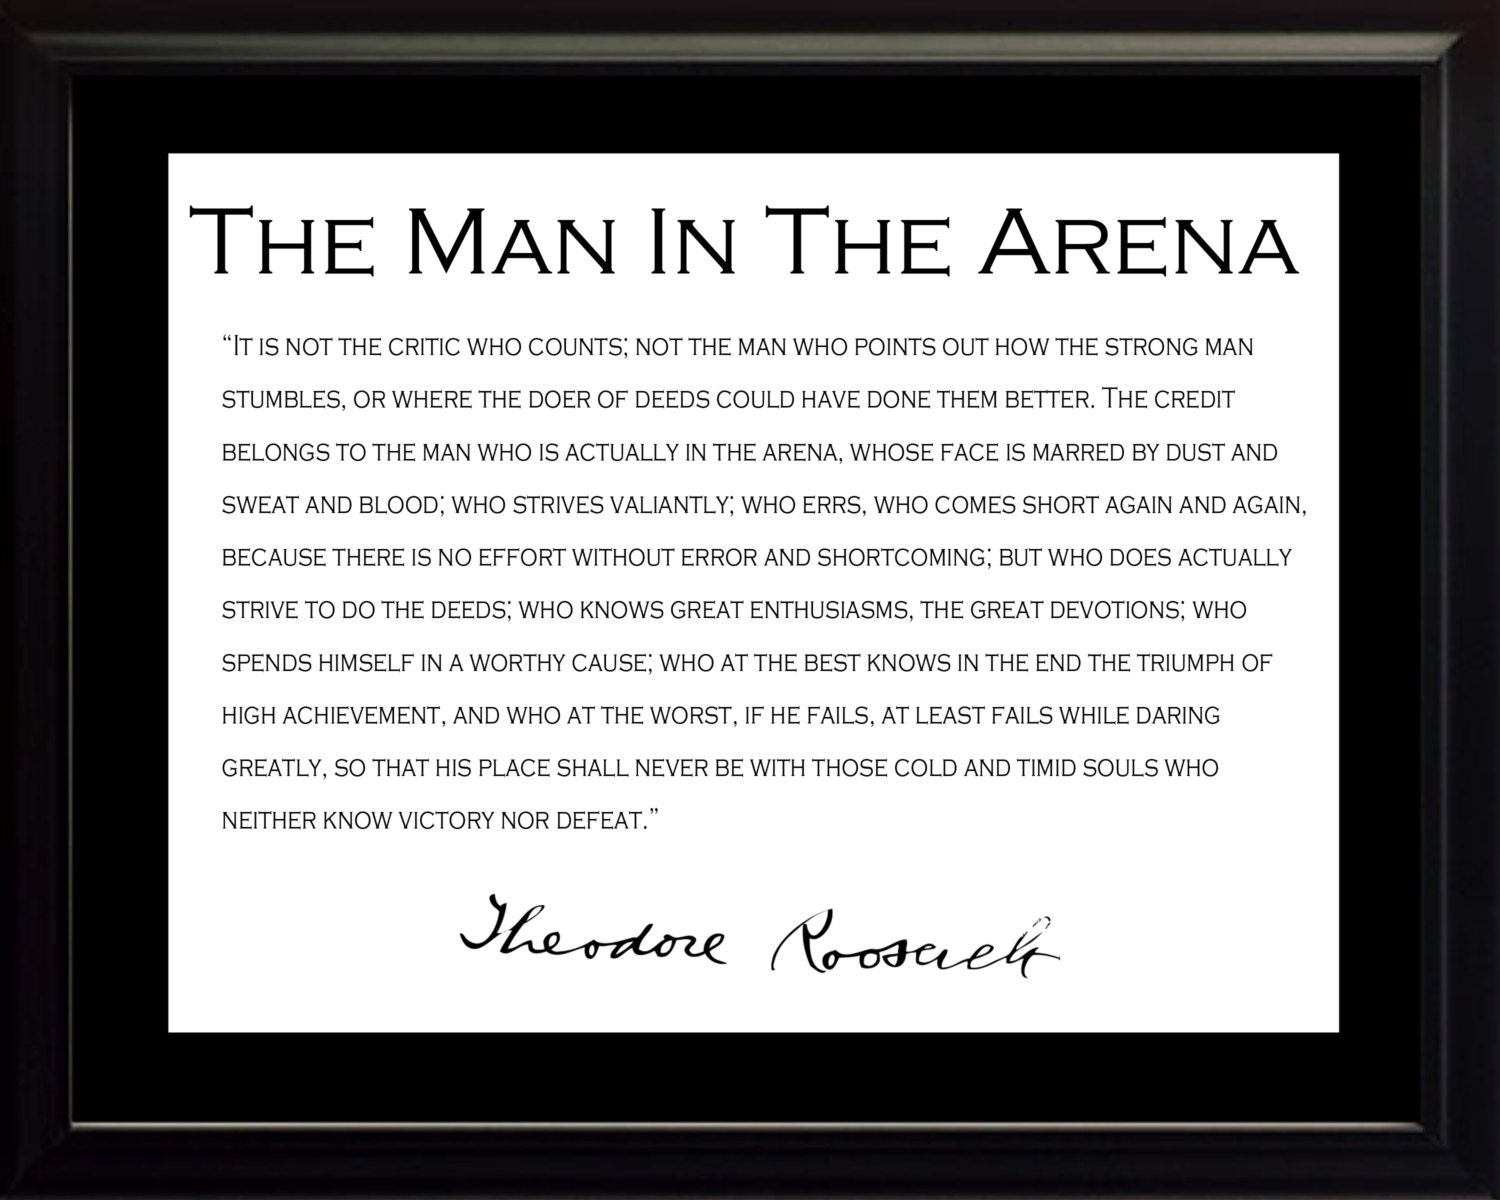 photo regarding The Man in the Arena Printable named Teddy Roosevelt Prices person Inside The Arena ~ Greatest 10 Estimates